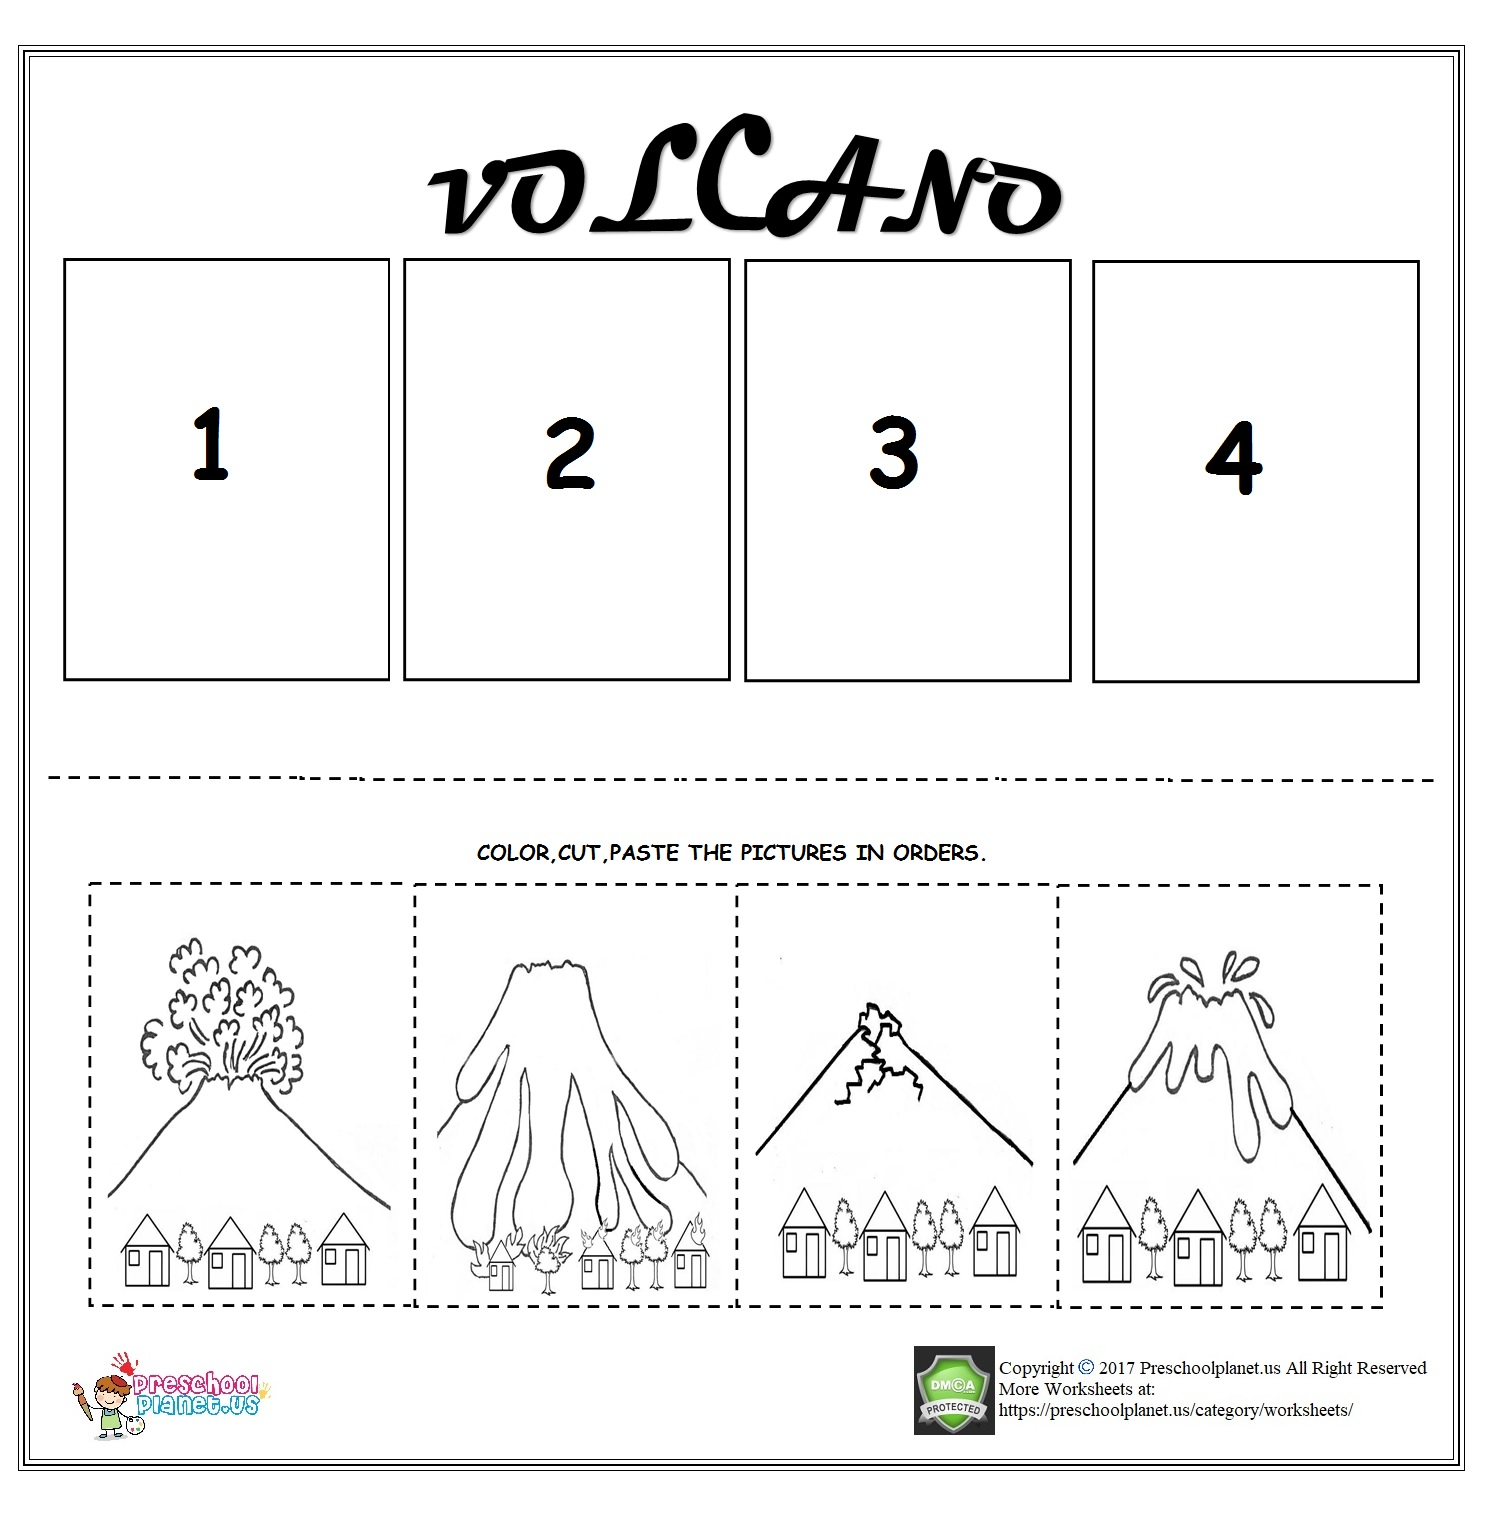 Preschool Easy Volcano Worksheet